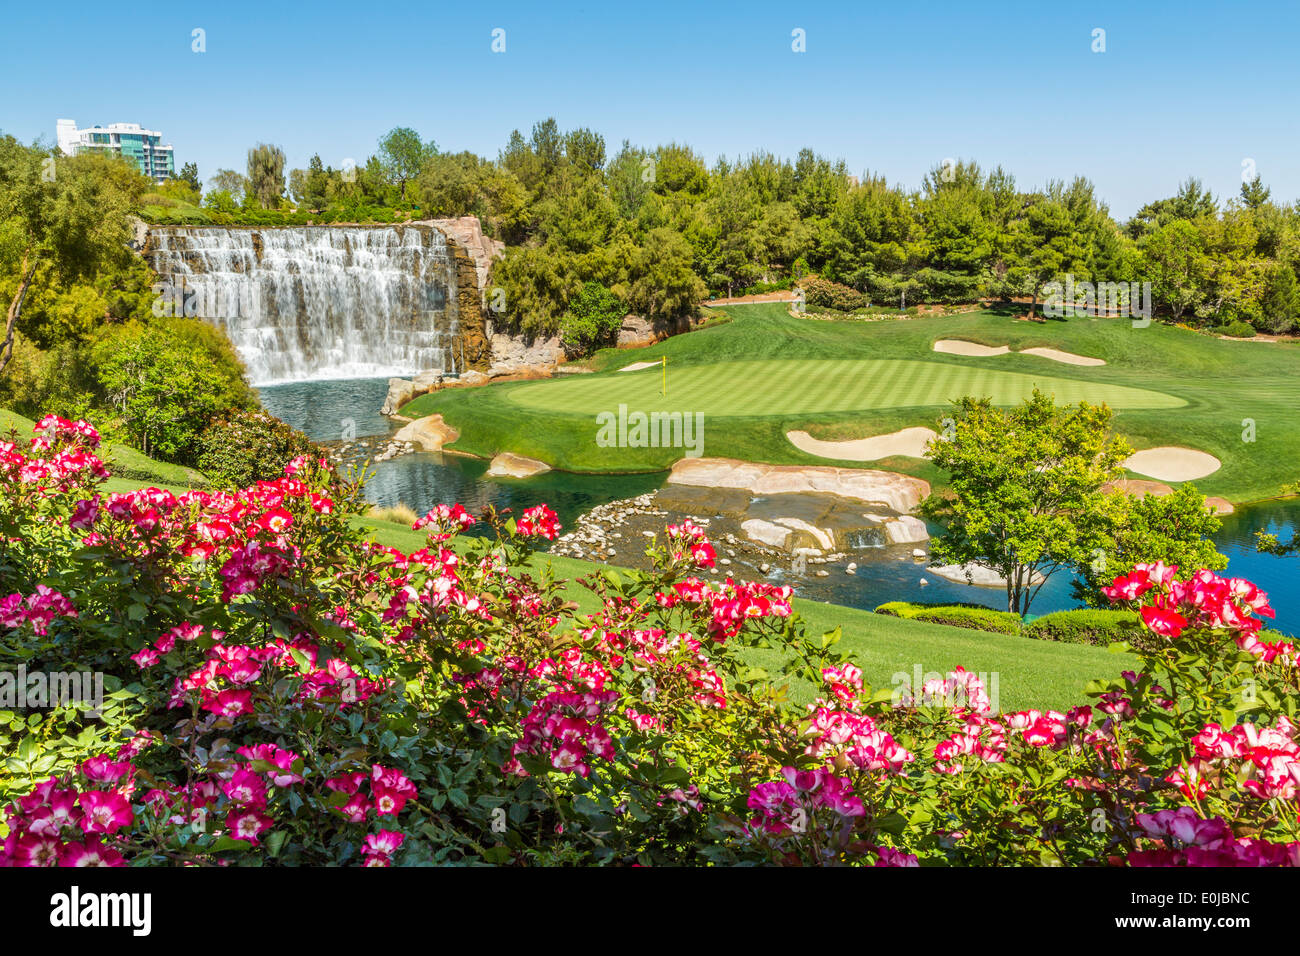 The Wynn Las Vegas Golf Course is due to close December 17 to create the Wynn Paradise Park,' a $1.5-billion development project Las Vegas Nevada USA - Stock Image